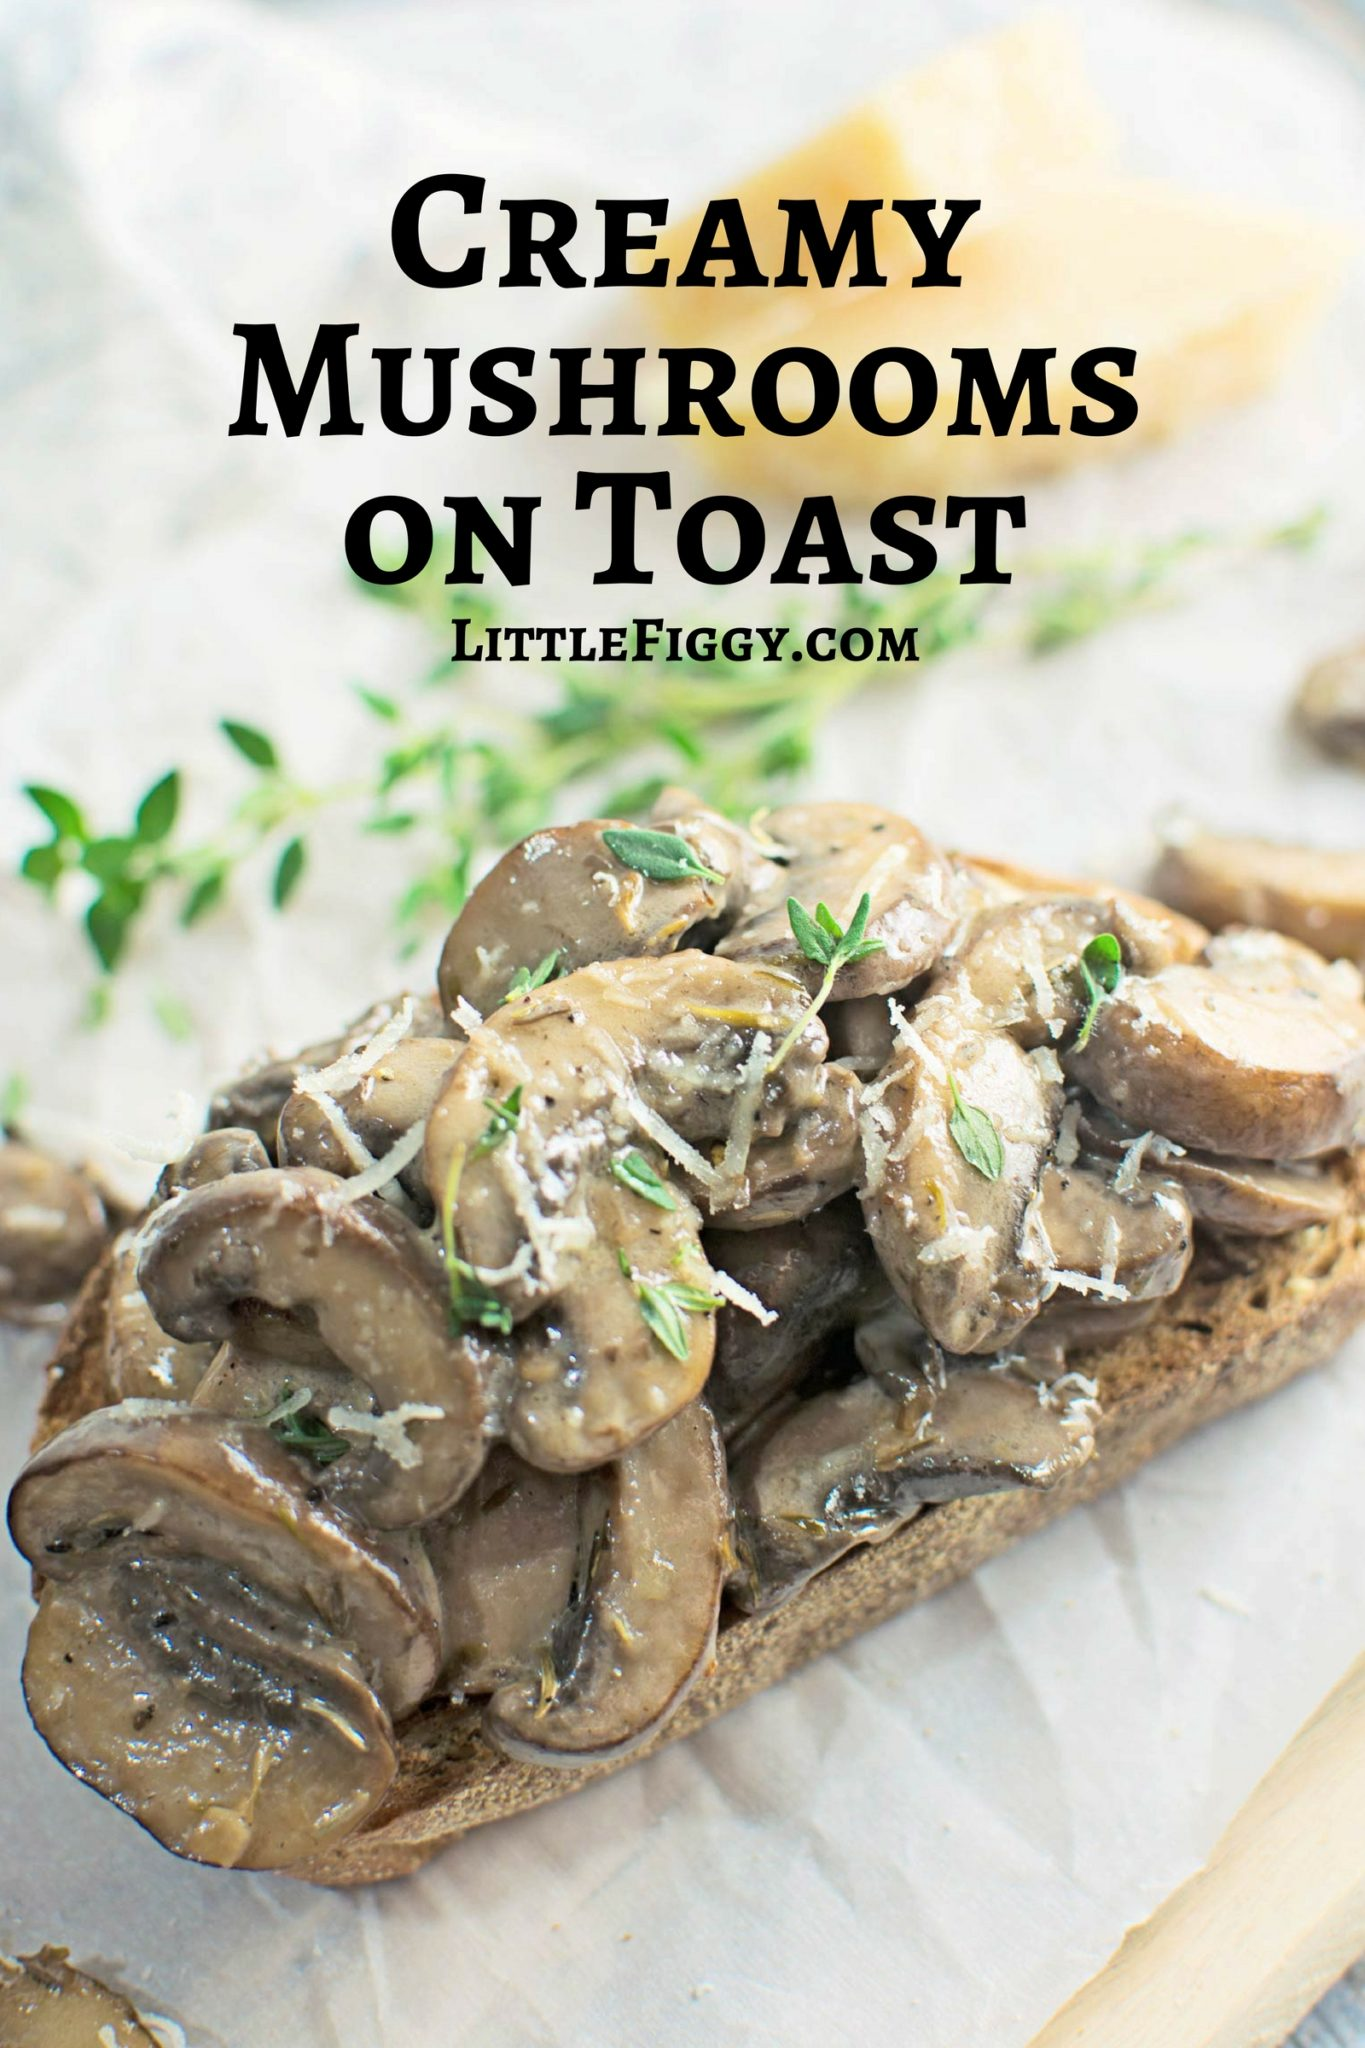 Try this moreish meal of Creamy Mushrooms on Toast as a snack, appetizers or even breakfast! Recipe @LittleFiggyFood